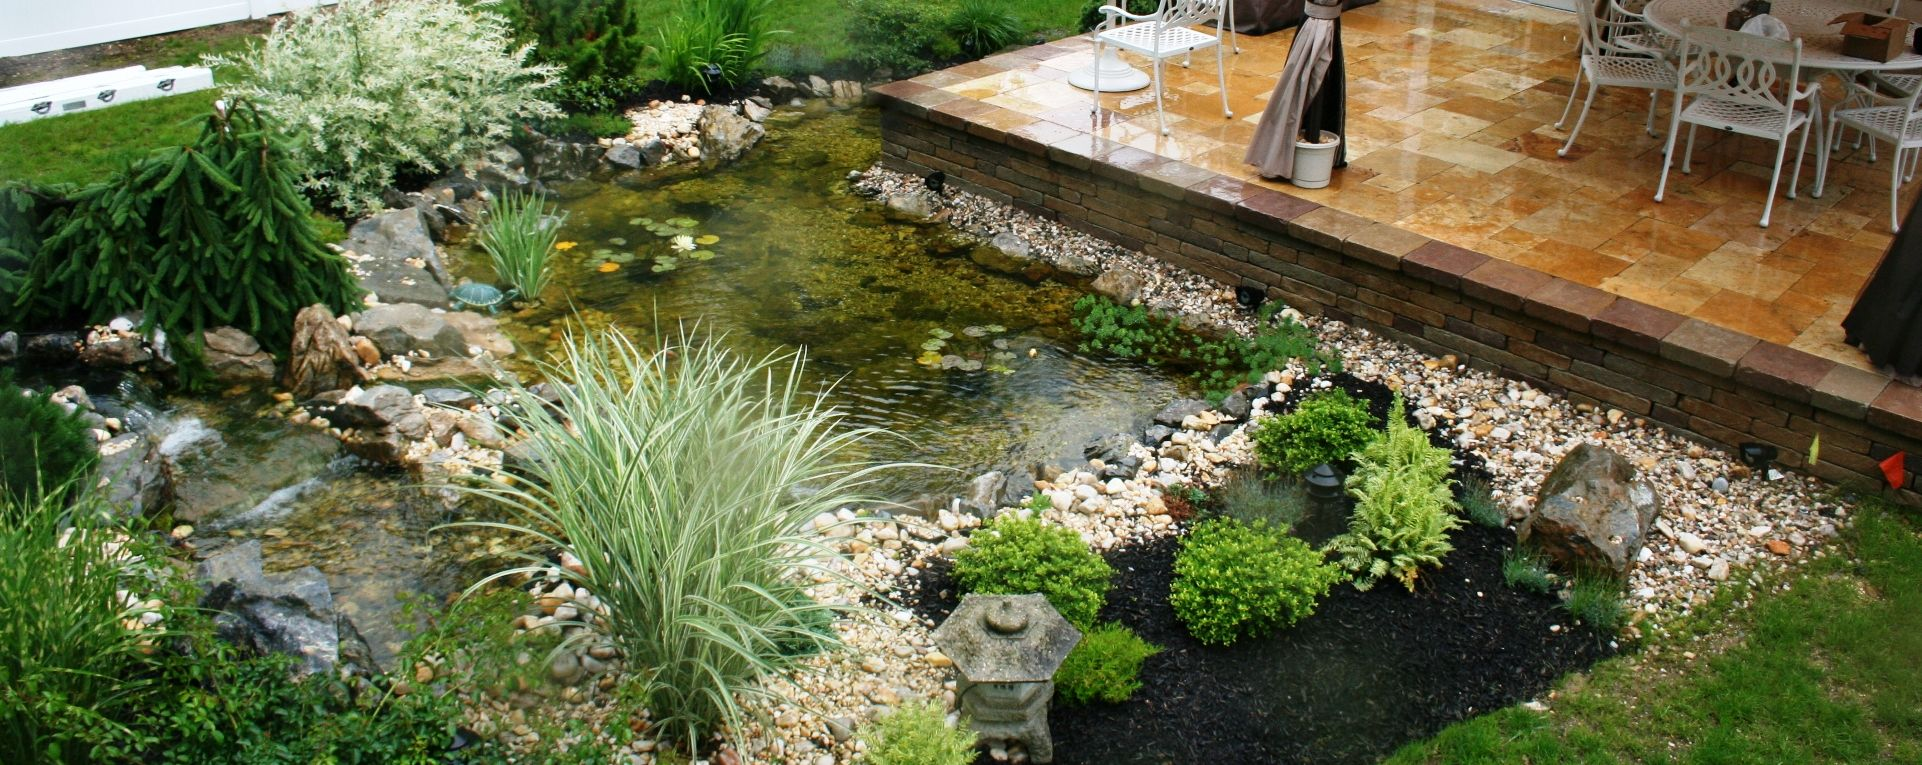 Landscape design long island ny landscaping companies for Backyard koi pond designs